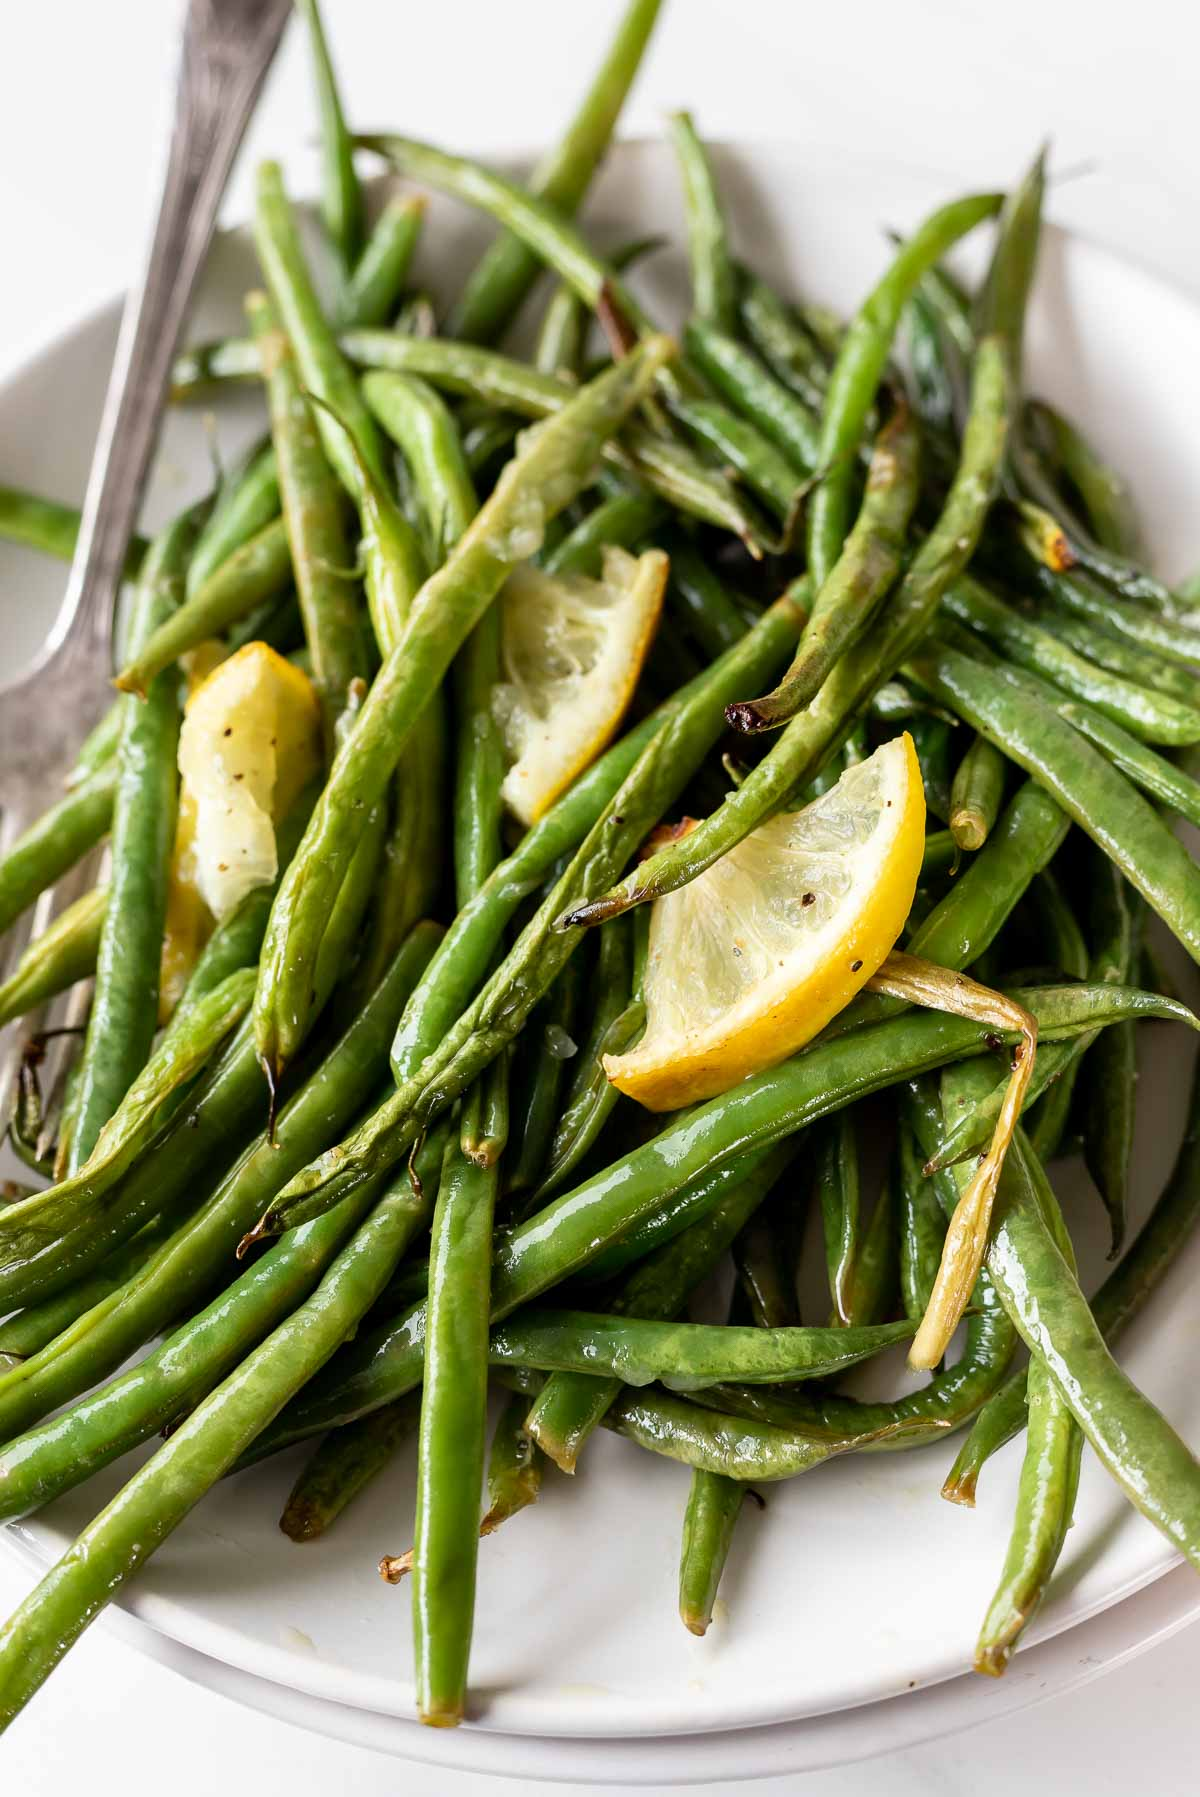 lemons and green beans served on white dish